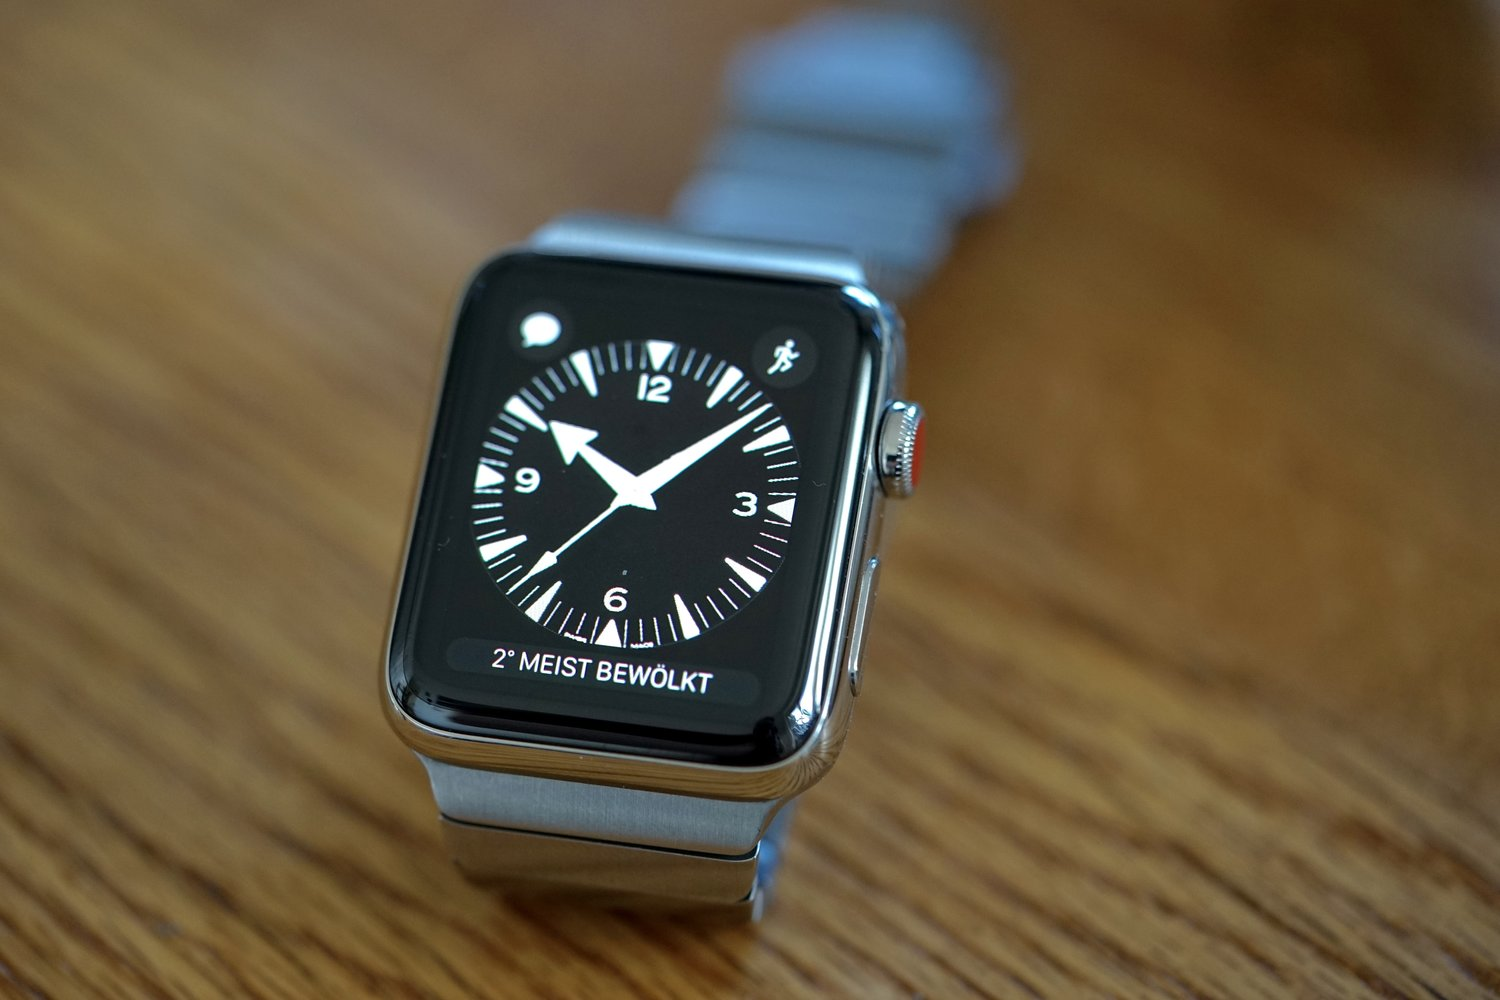 Poll: do we need a third party dials in the Apple Watch?